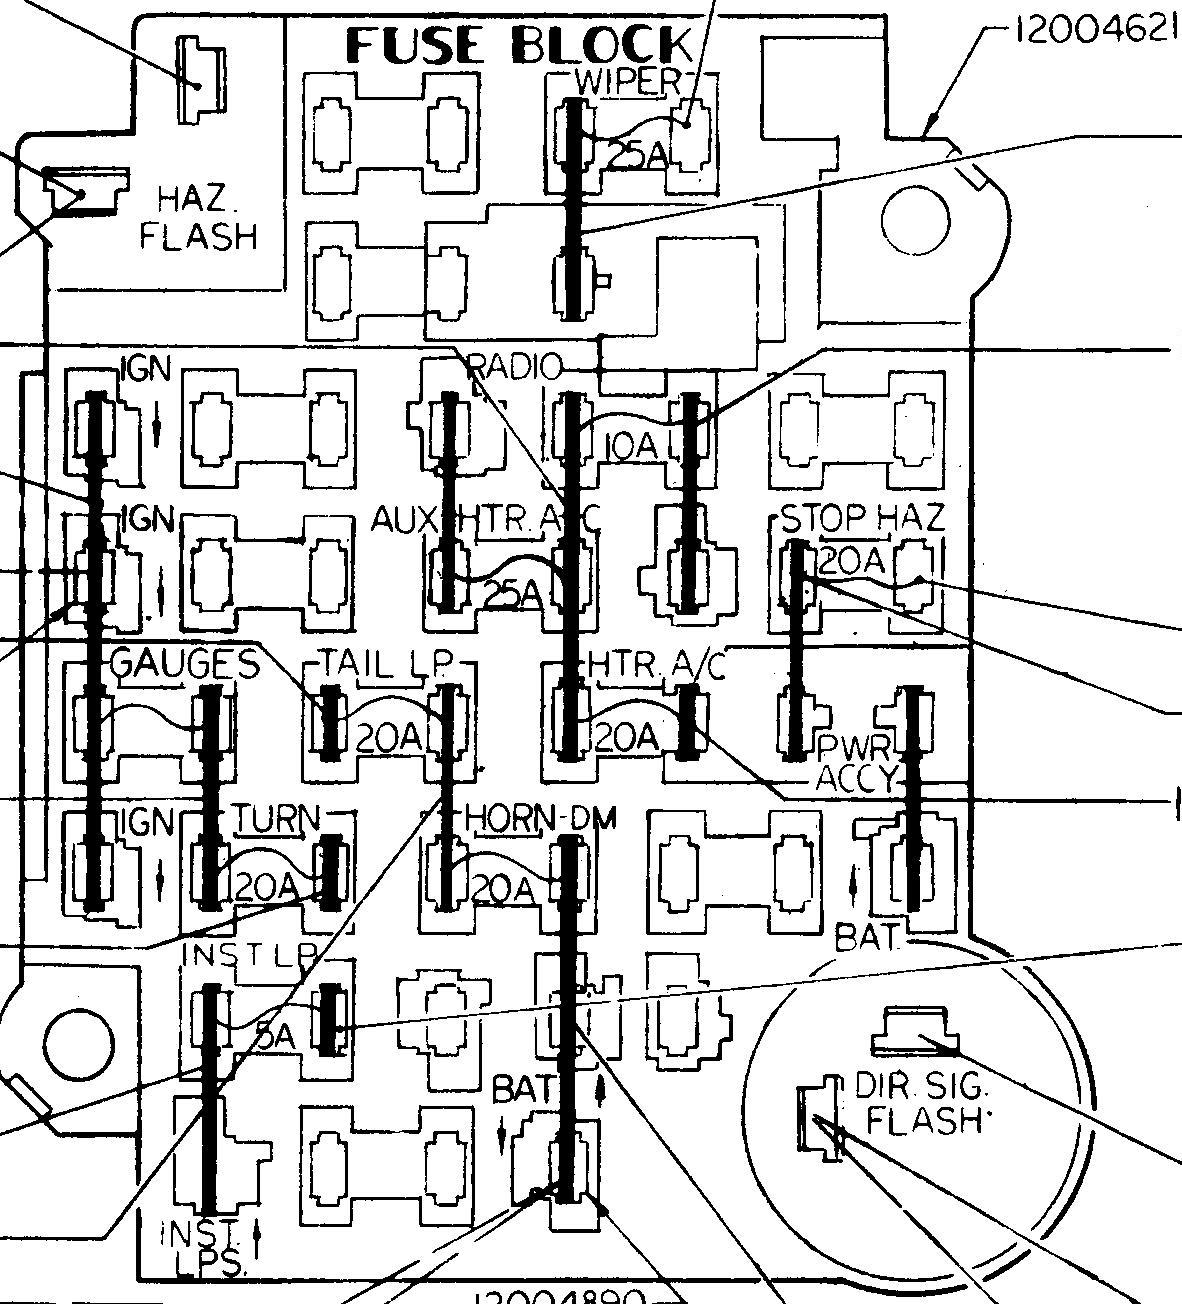 hight resolution of c10 fuse box schematic wiring diagrams c4 fuse box 1979 chevy truck fuse box diagram wiring